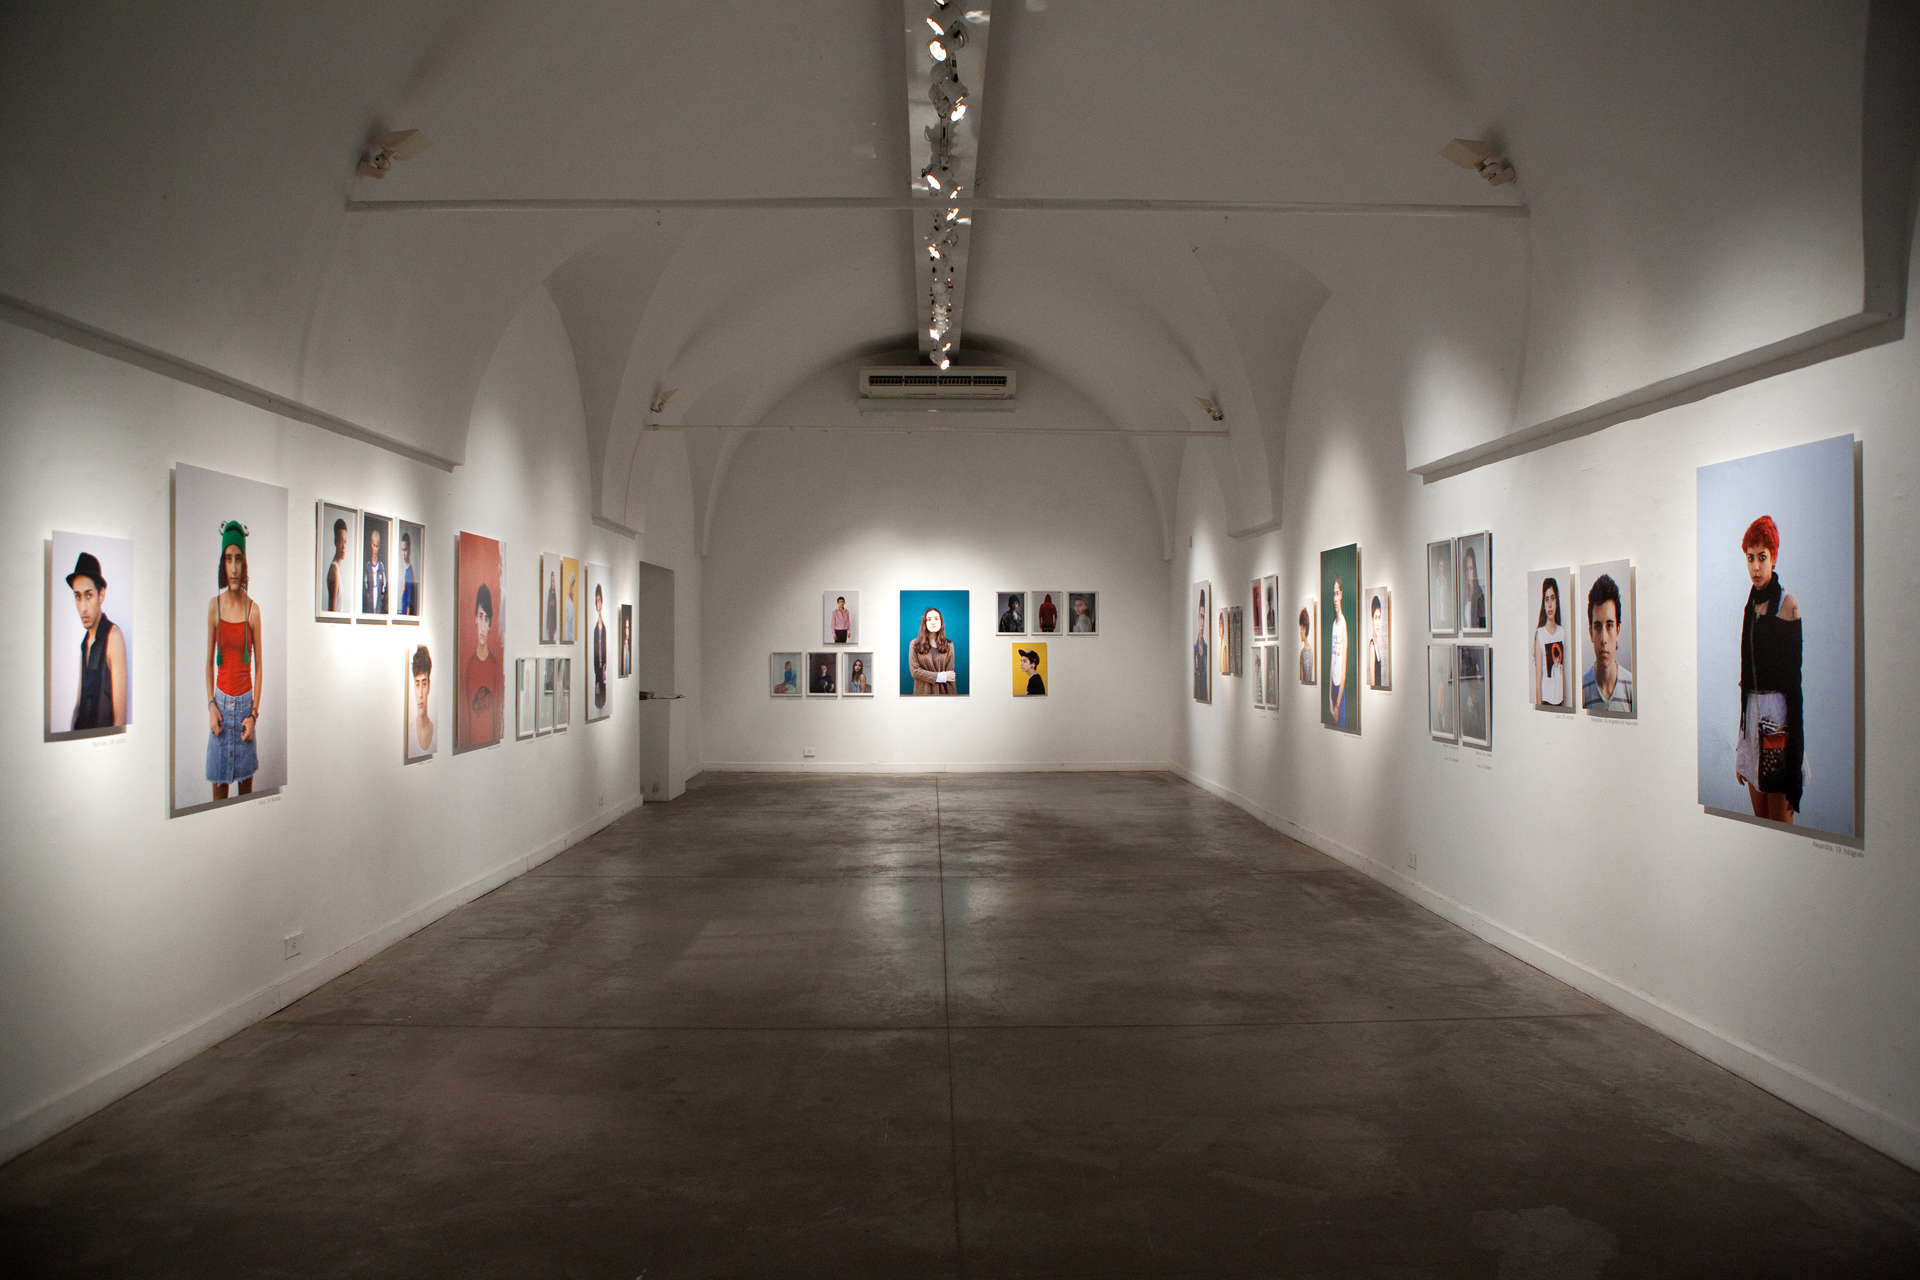 May 2013: exhibition at Centro Cultural Recoleta, Buenos Aires.